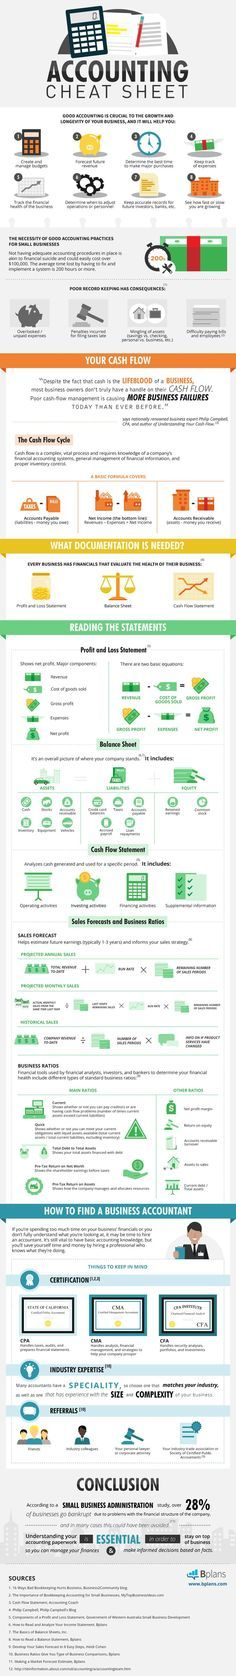 81 best Inspiring Ideas images on Pinterest Business infographics - sales lead tracking spreadsheet